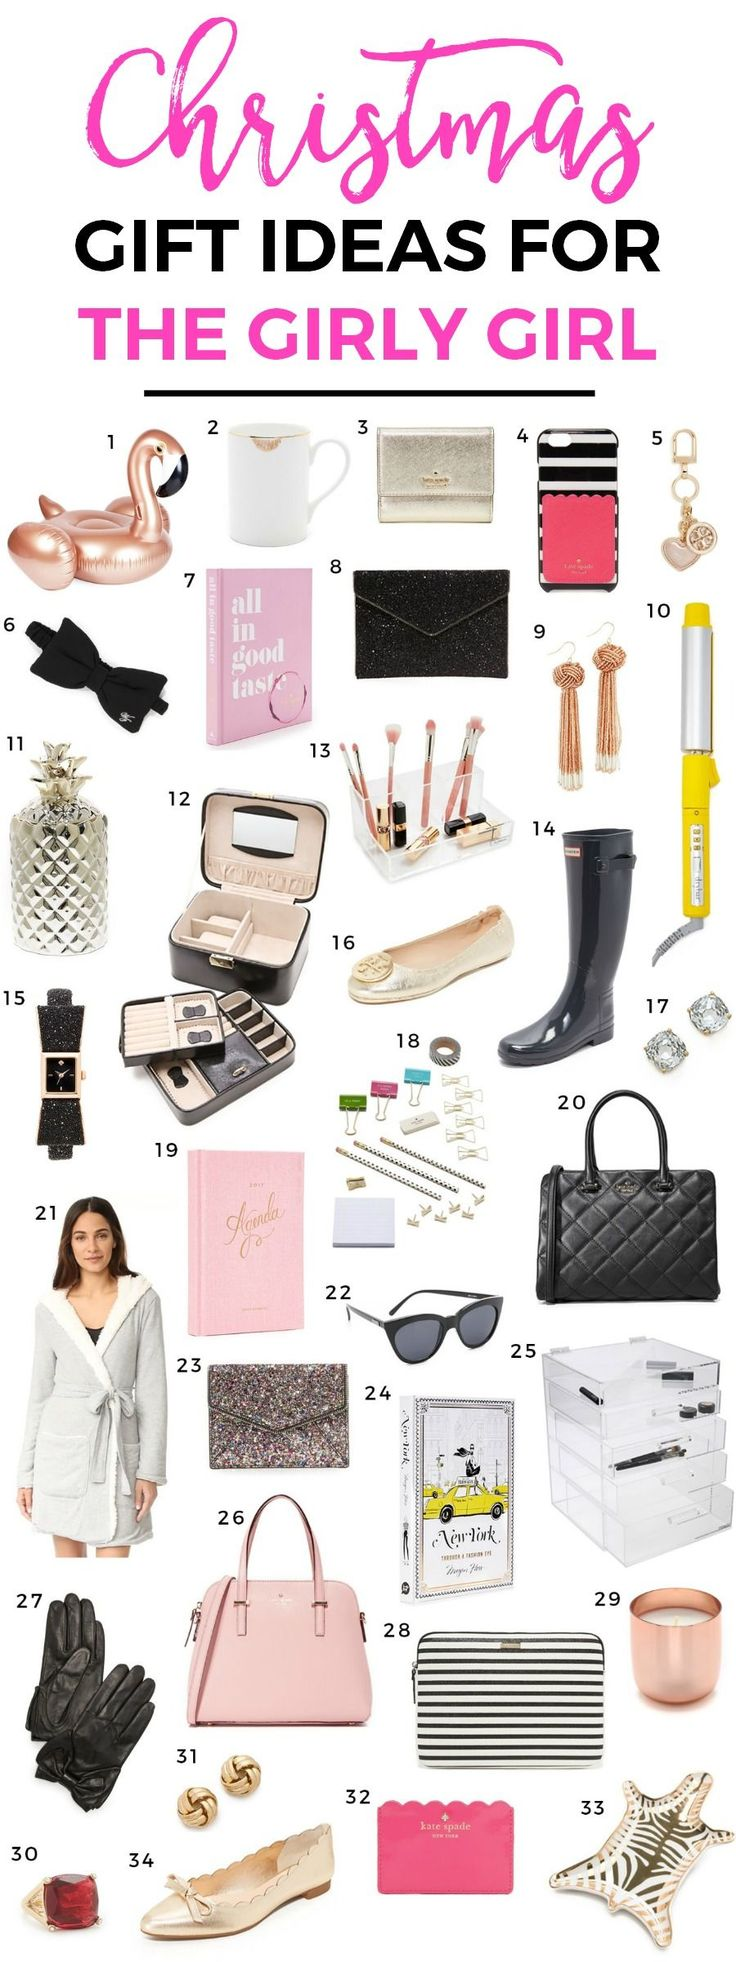 The ultimate list of Christmas gift ideas for the girly girl in your life! This fun Christmas gift guide for women is filled with classy and feminine gifts in every price range   learn about the Black Friday and Cyber Monday sale at Shopbop! @shopbop